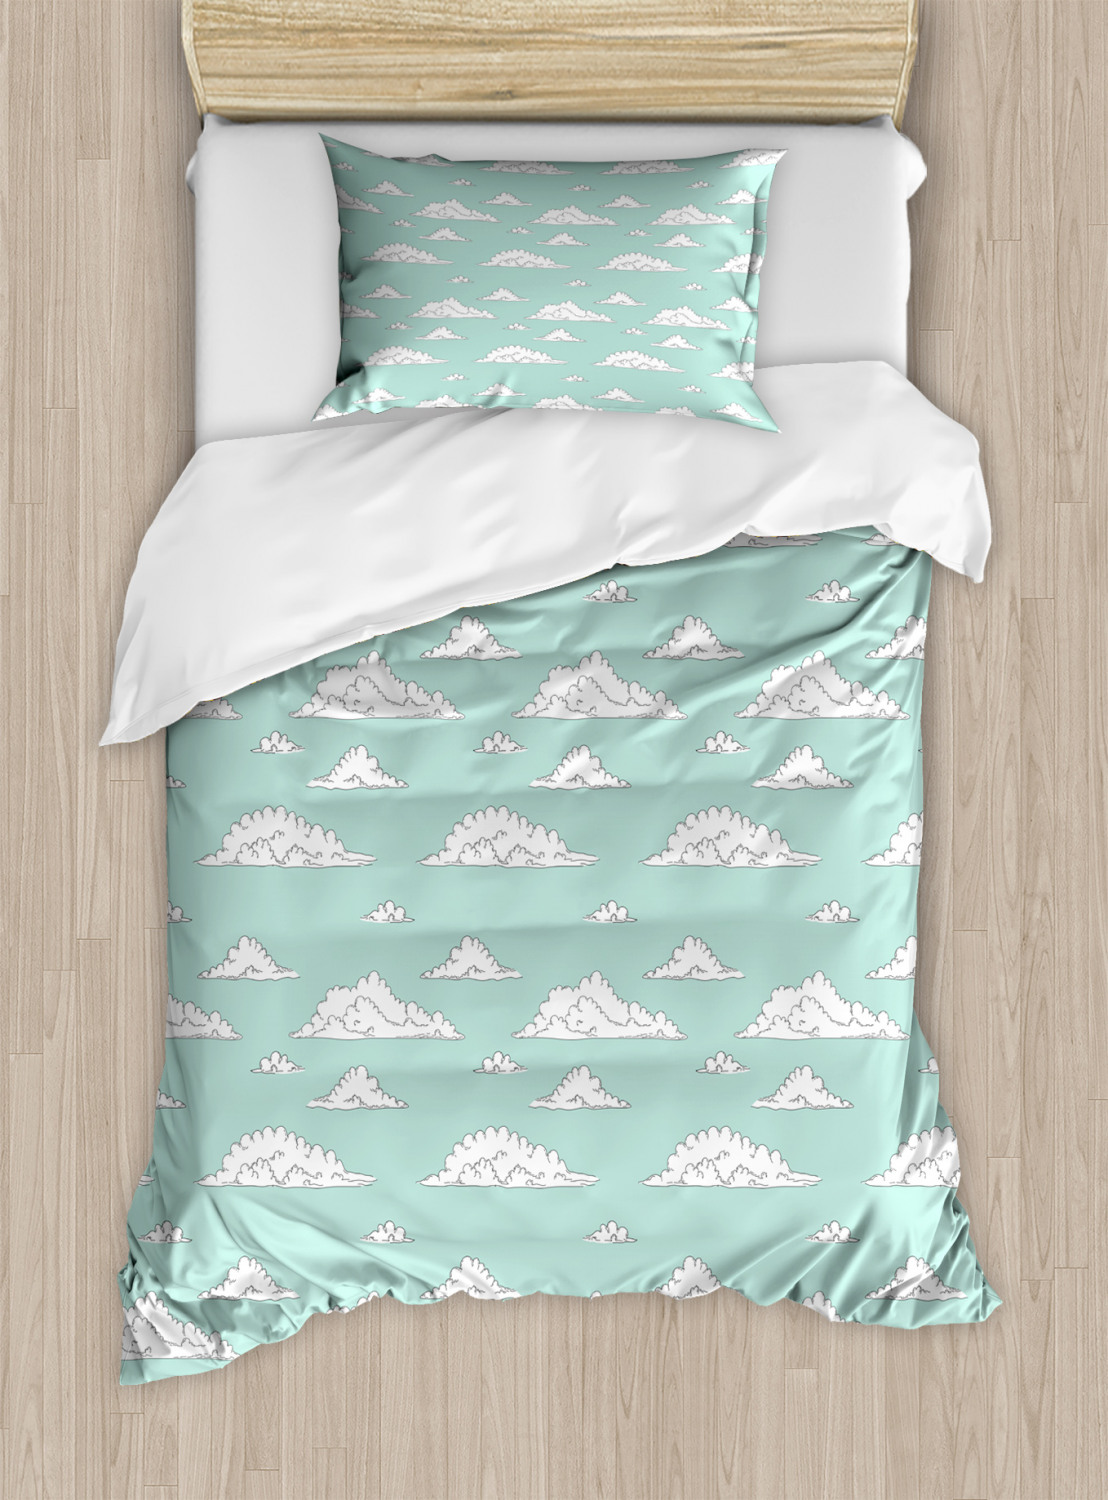 Teal-and-White-Duvet-Cover-Set-Twin-Queen-King-Sizes-with-Pillow-Shams-Ambesonne thumbnail 8